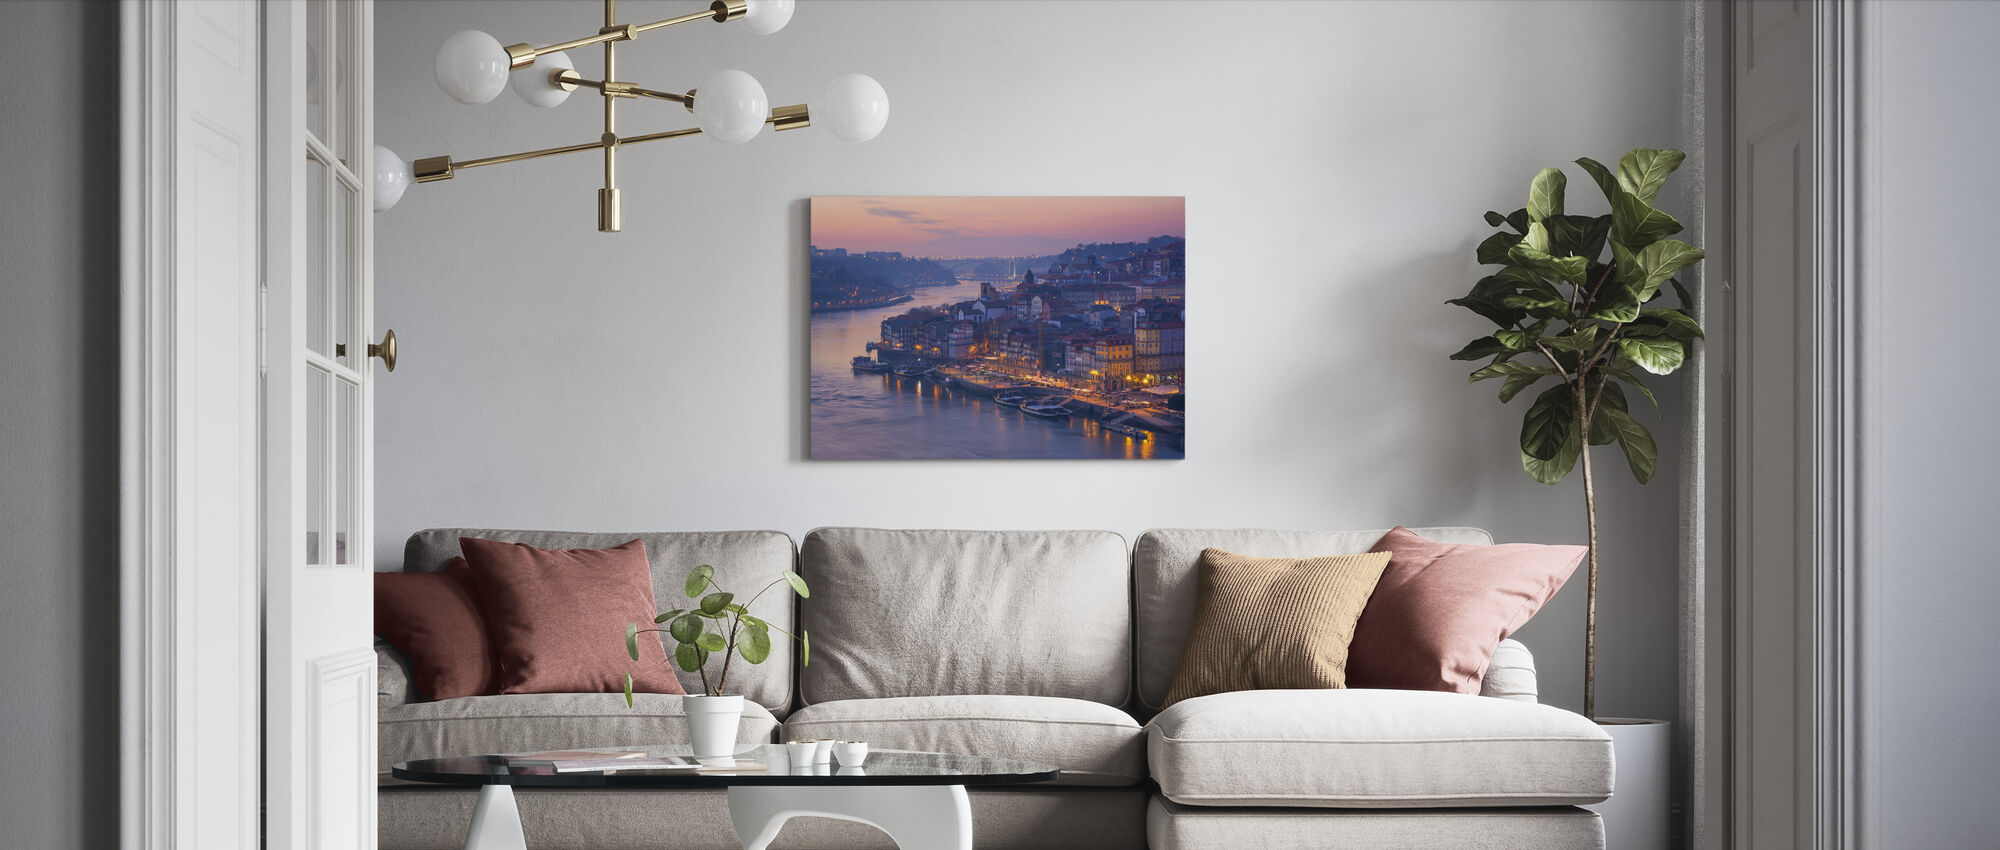 Zonsondergang in Porto City - Canvas print - Woonkamer